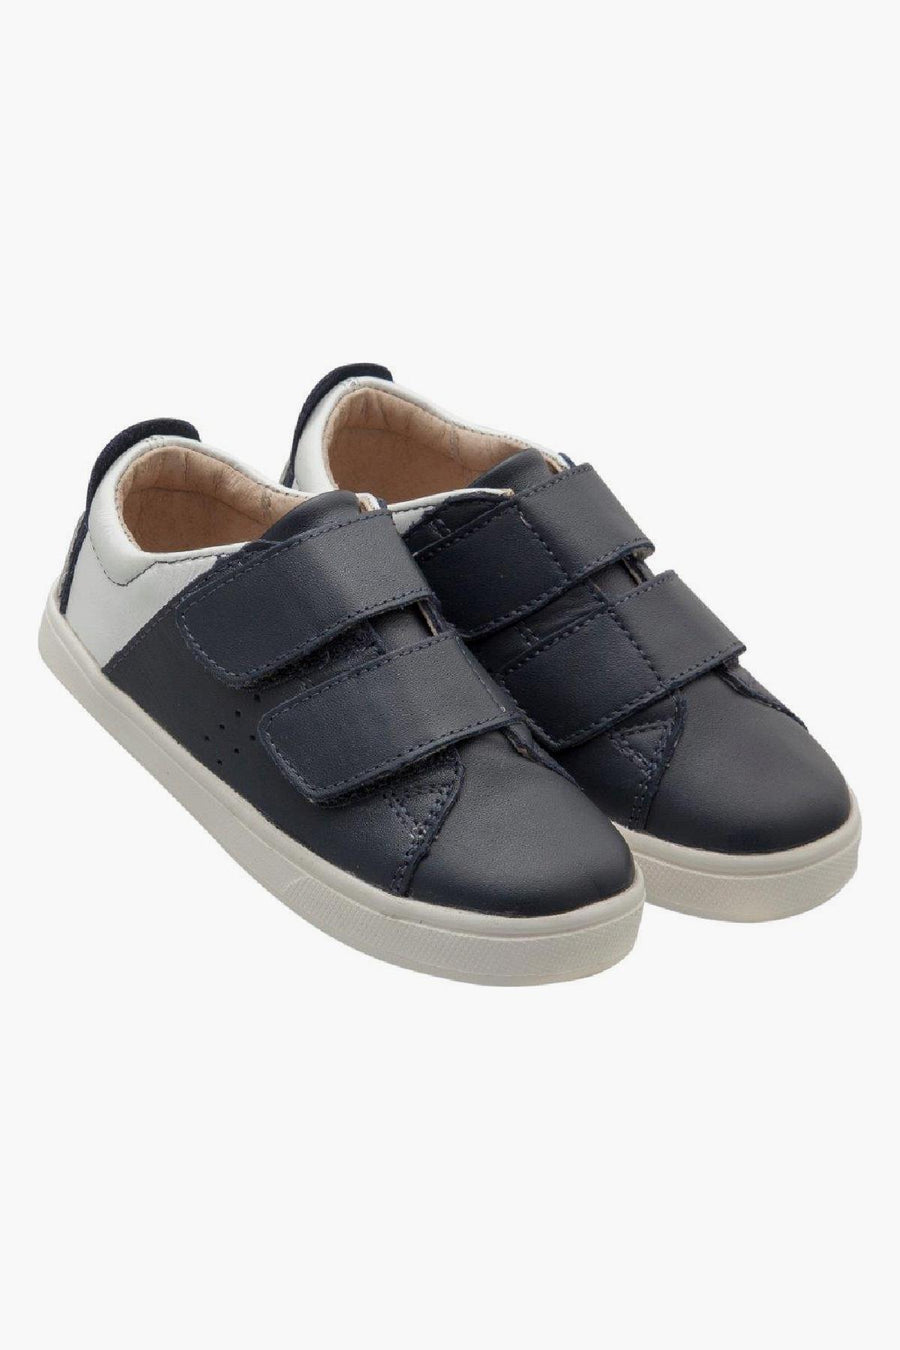 Old Soles Toko Boys Shoes - Navy Snow